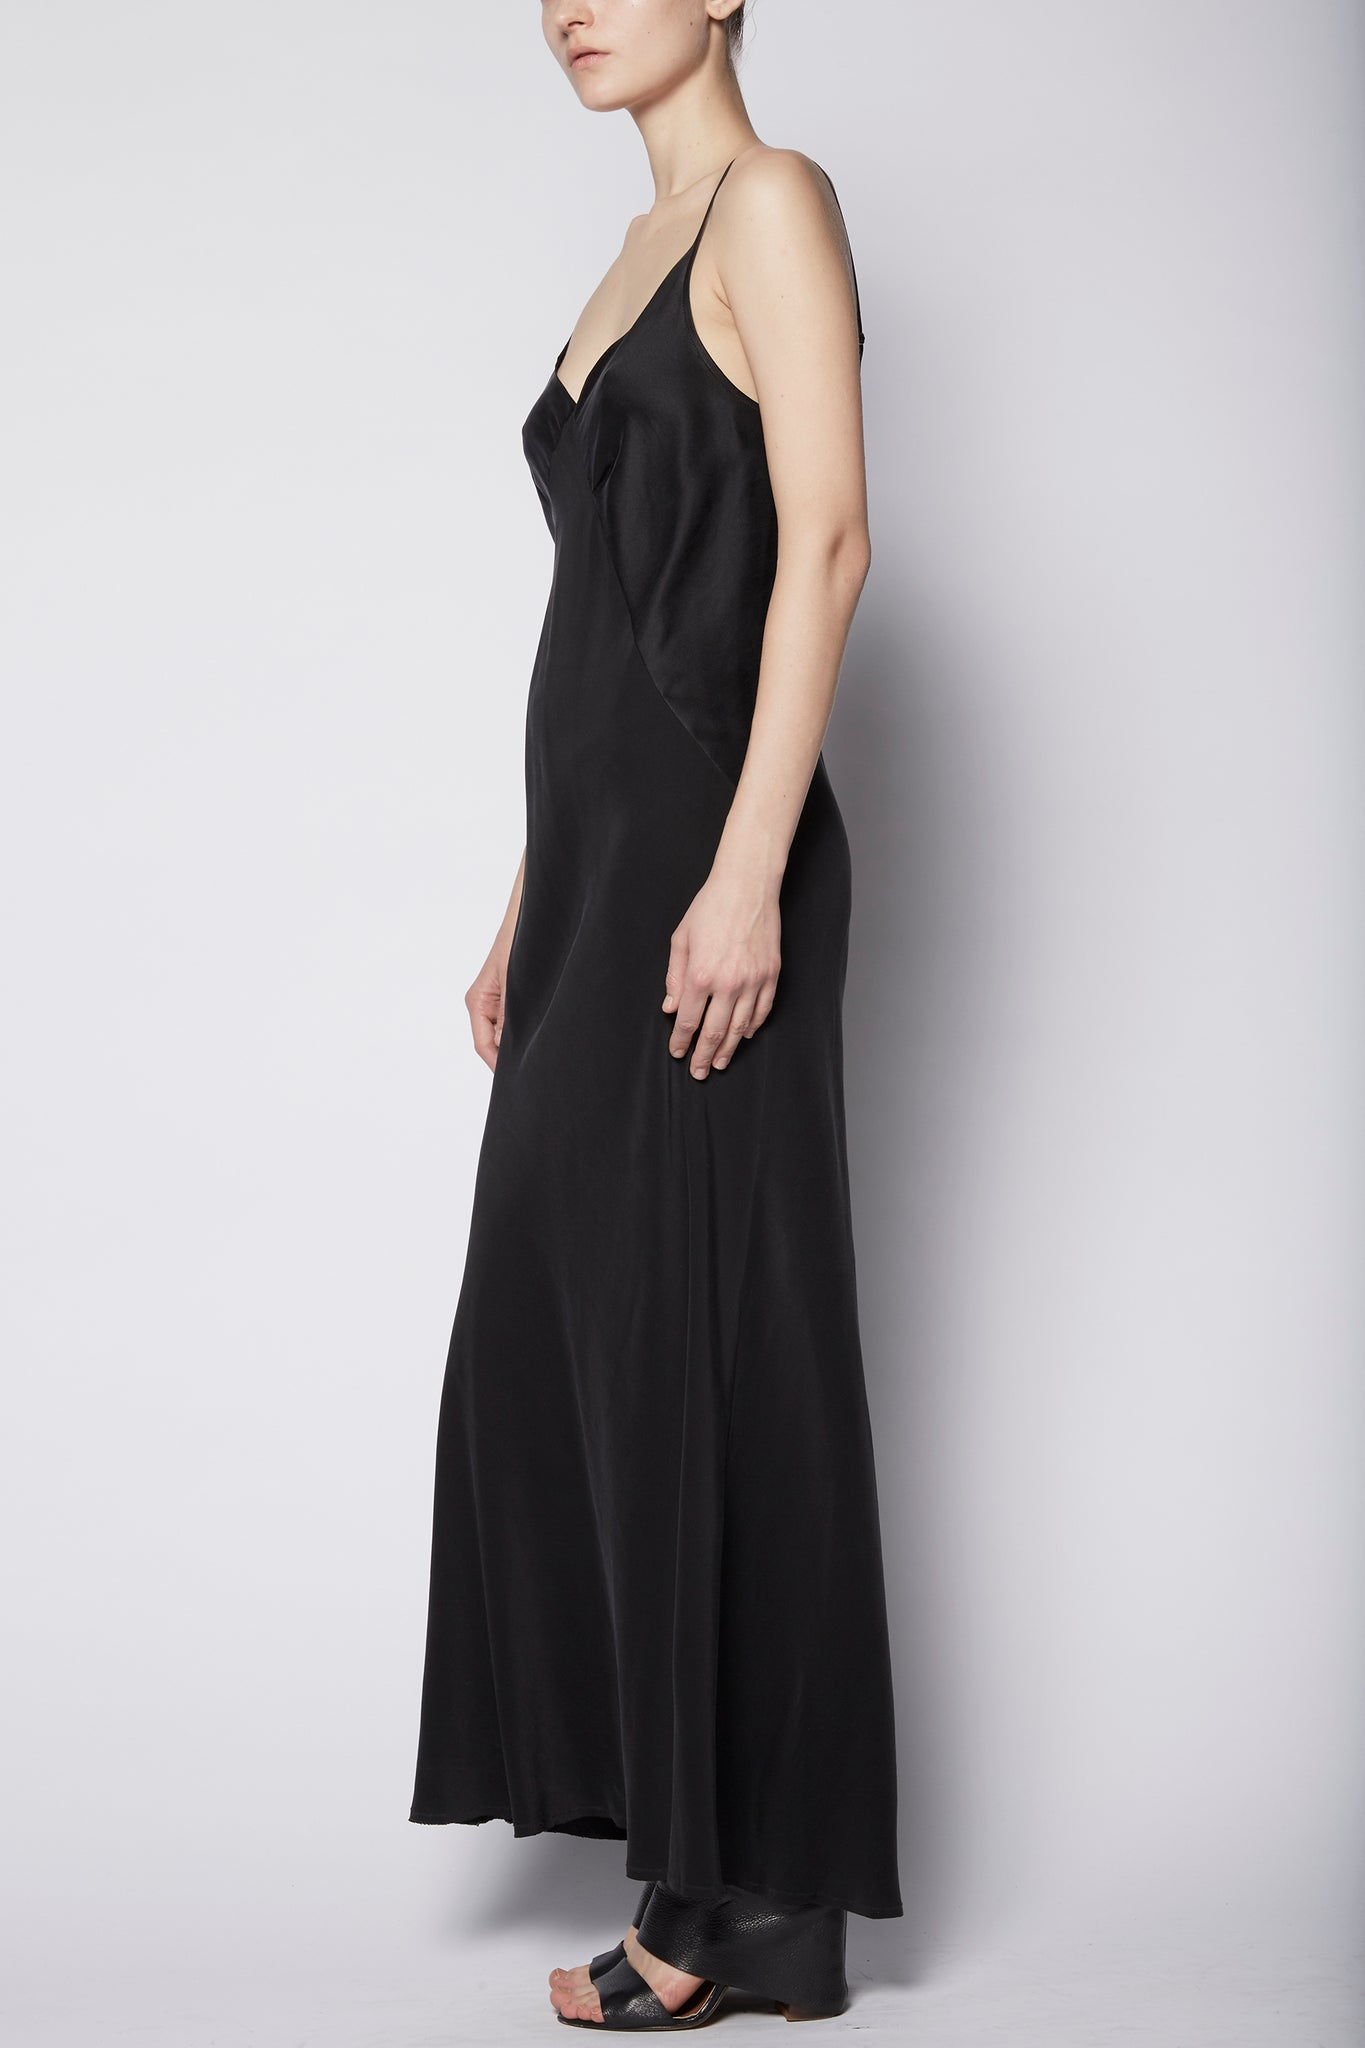 KES 7/8 Triangle Slip Dress - Black (pre-order)